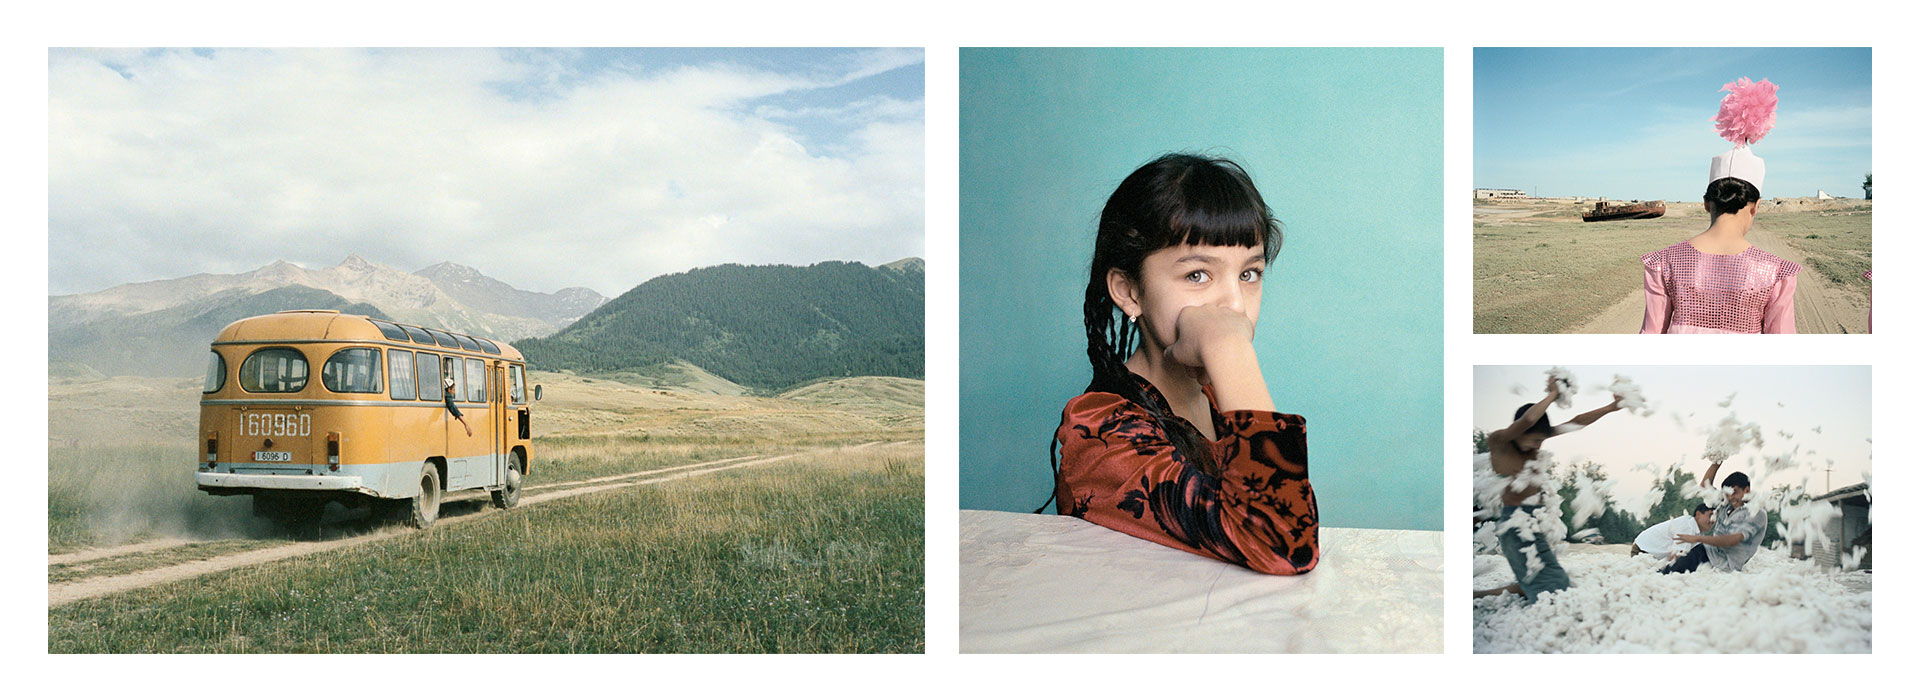 Out of steppe: a photographic odyssey into the heart of Central Asia